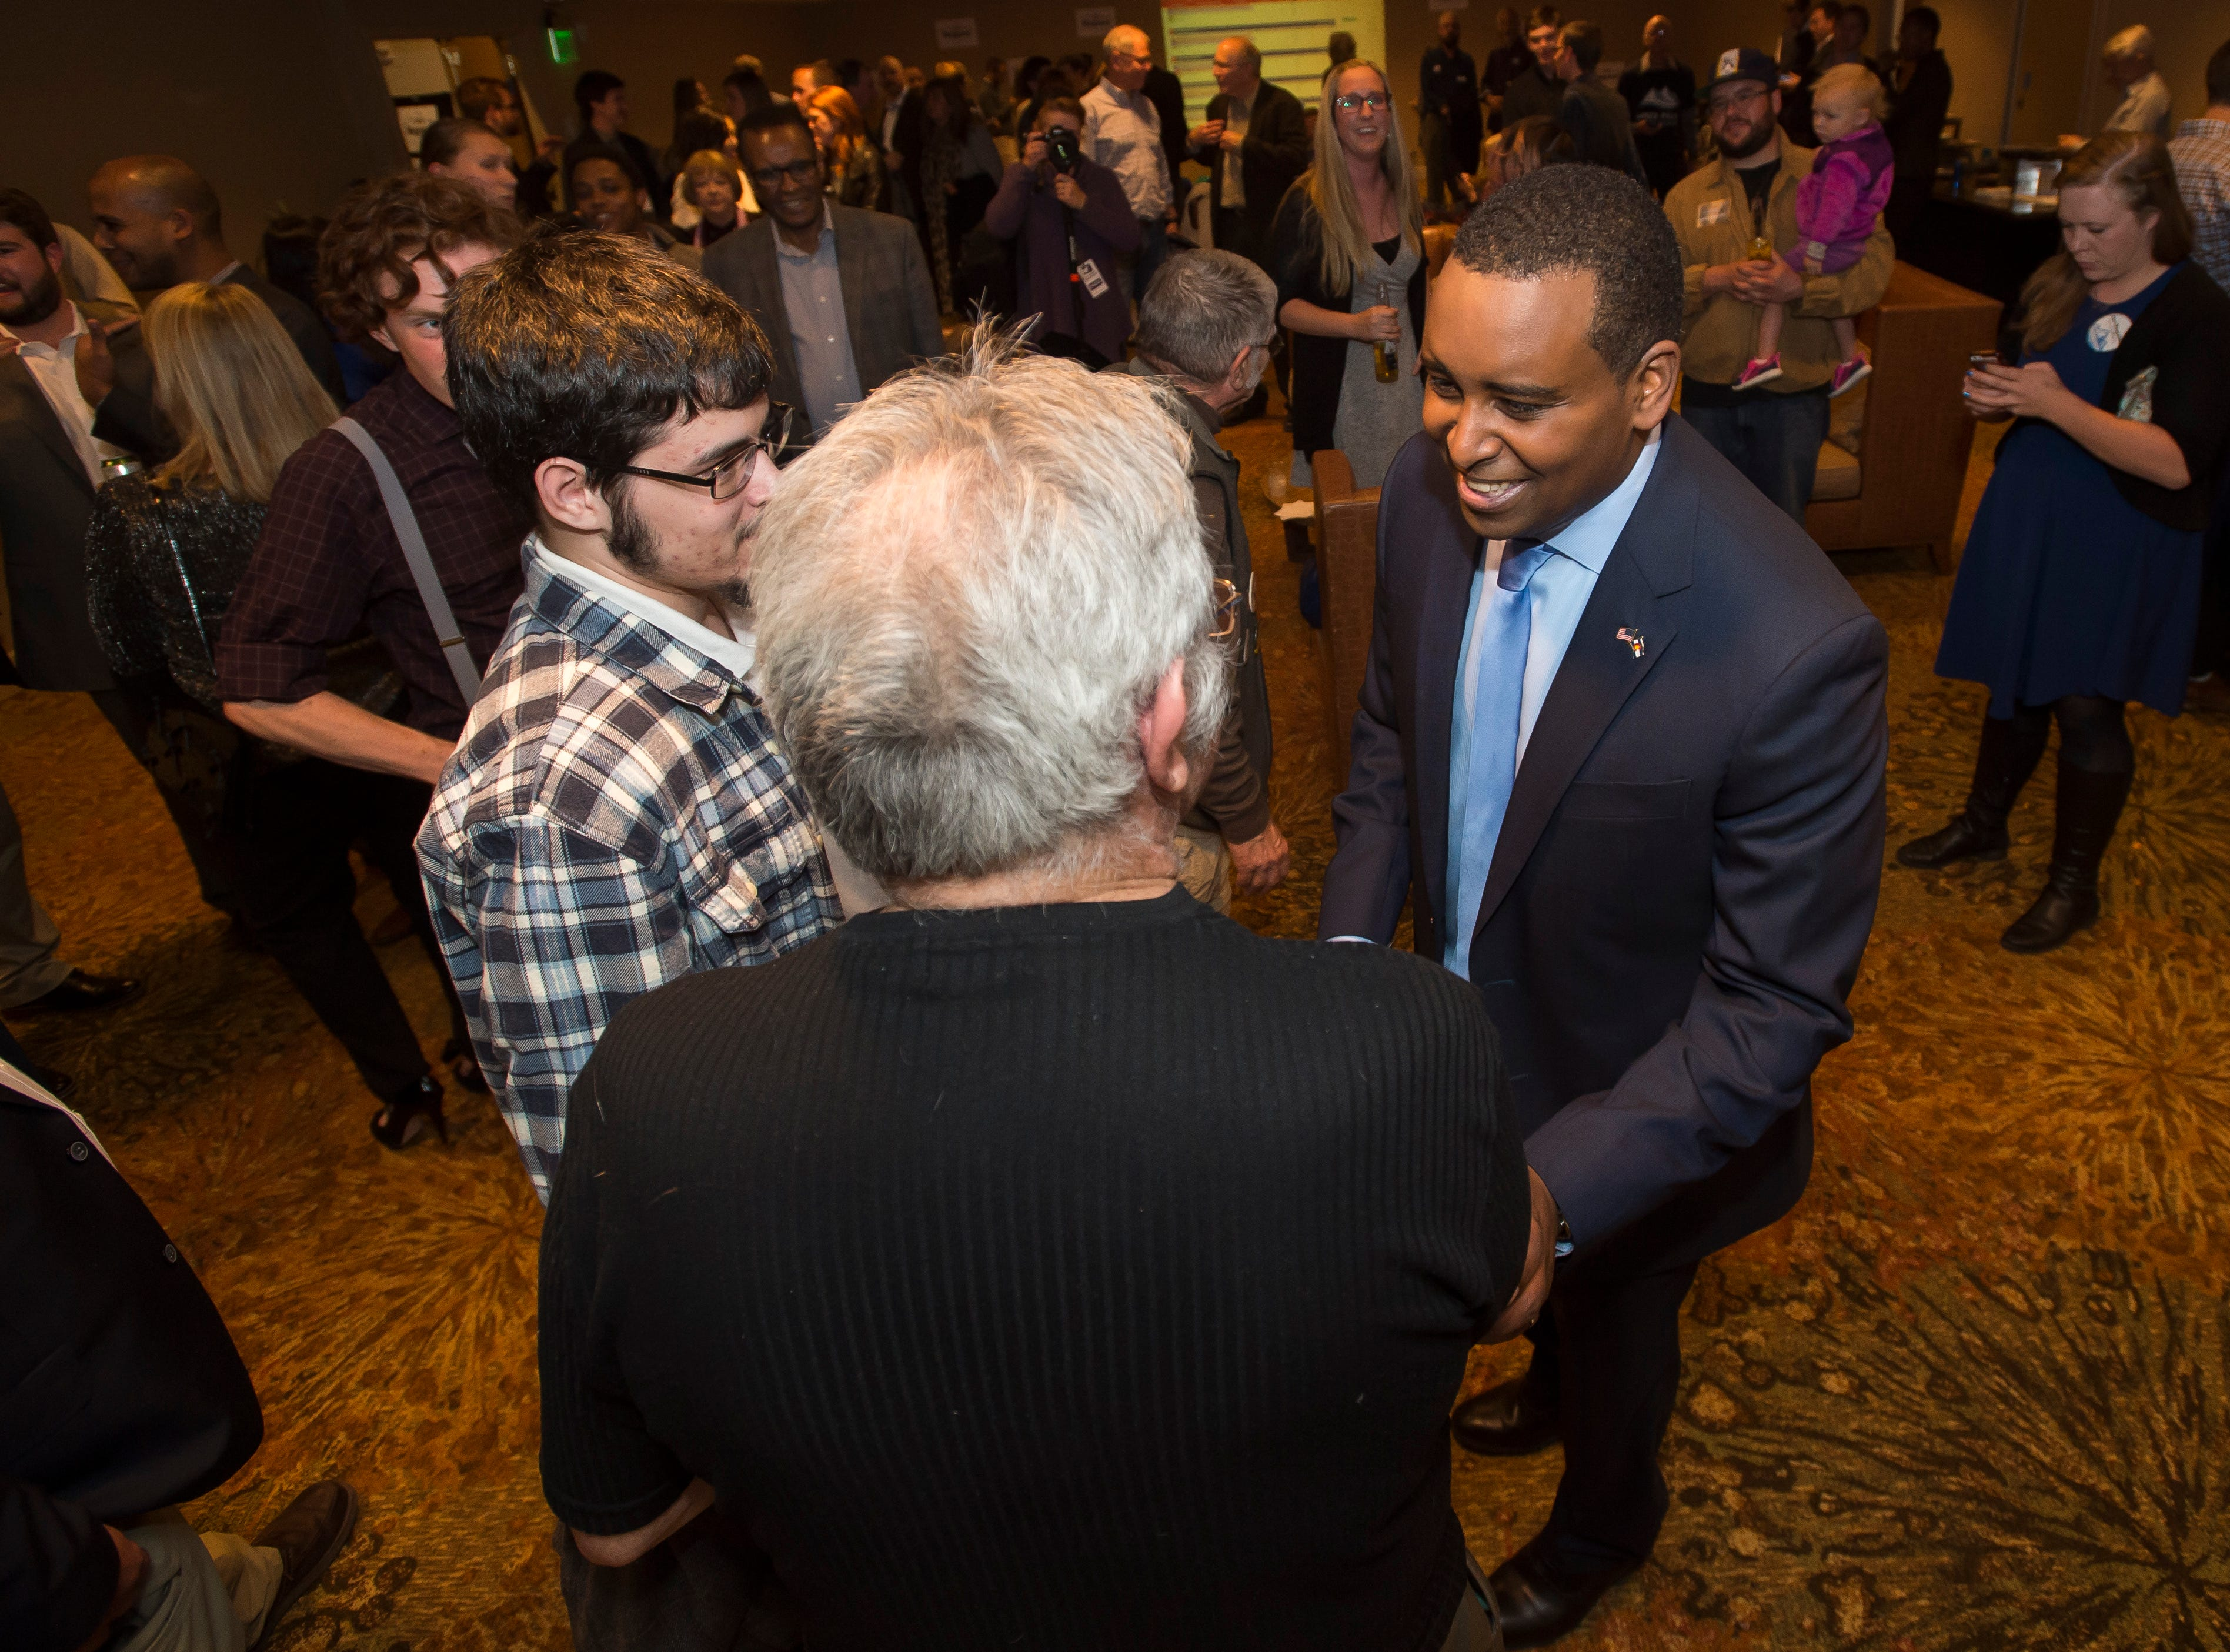 Colorado 2nd congressional district candidate Joe Neguse greets father and son Tim and Daniel Goult during his election watch party on Tuesday, Nov. 6, 2018, at the Westin Denver Downtown hotel in Denver, Colo.